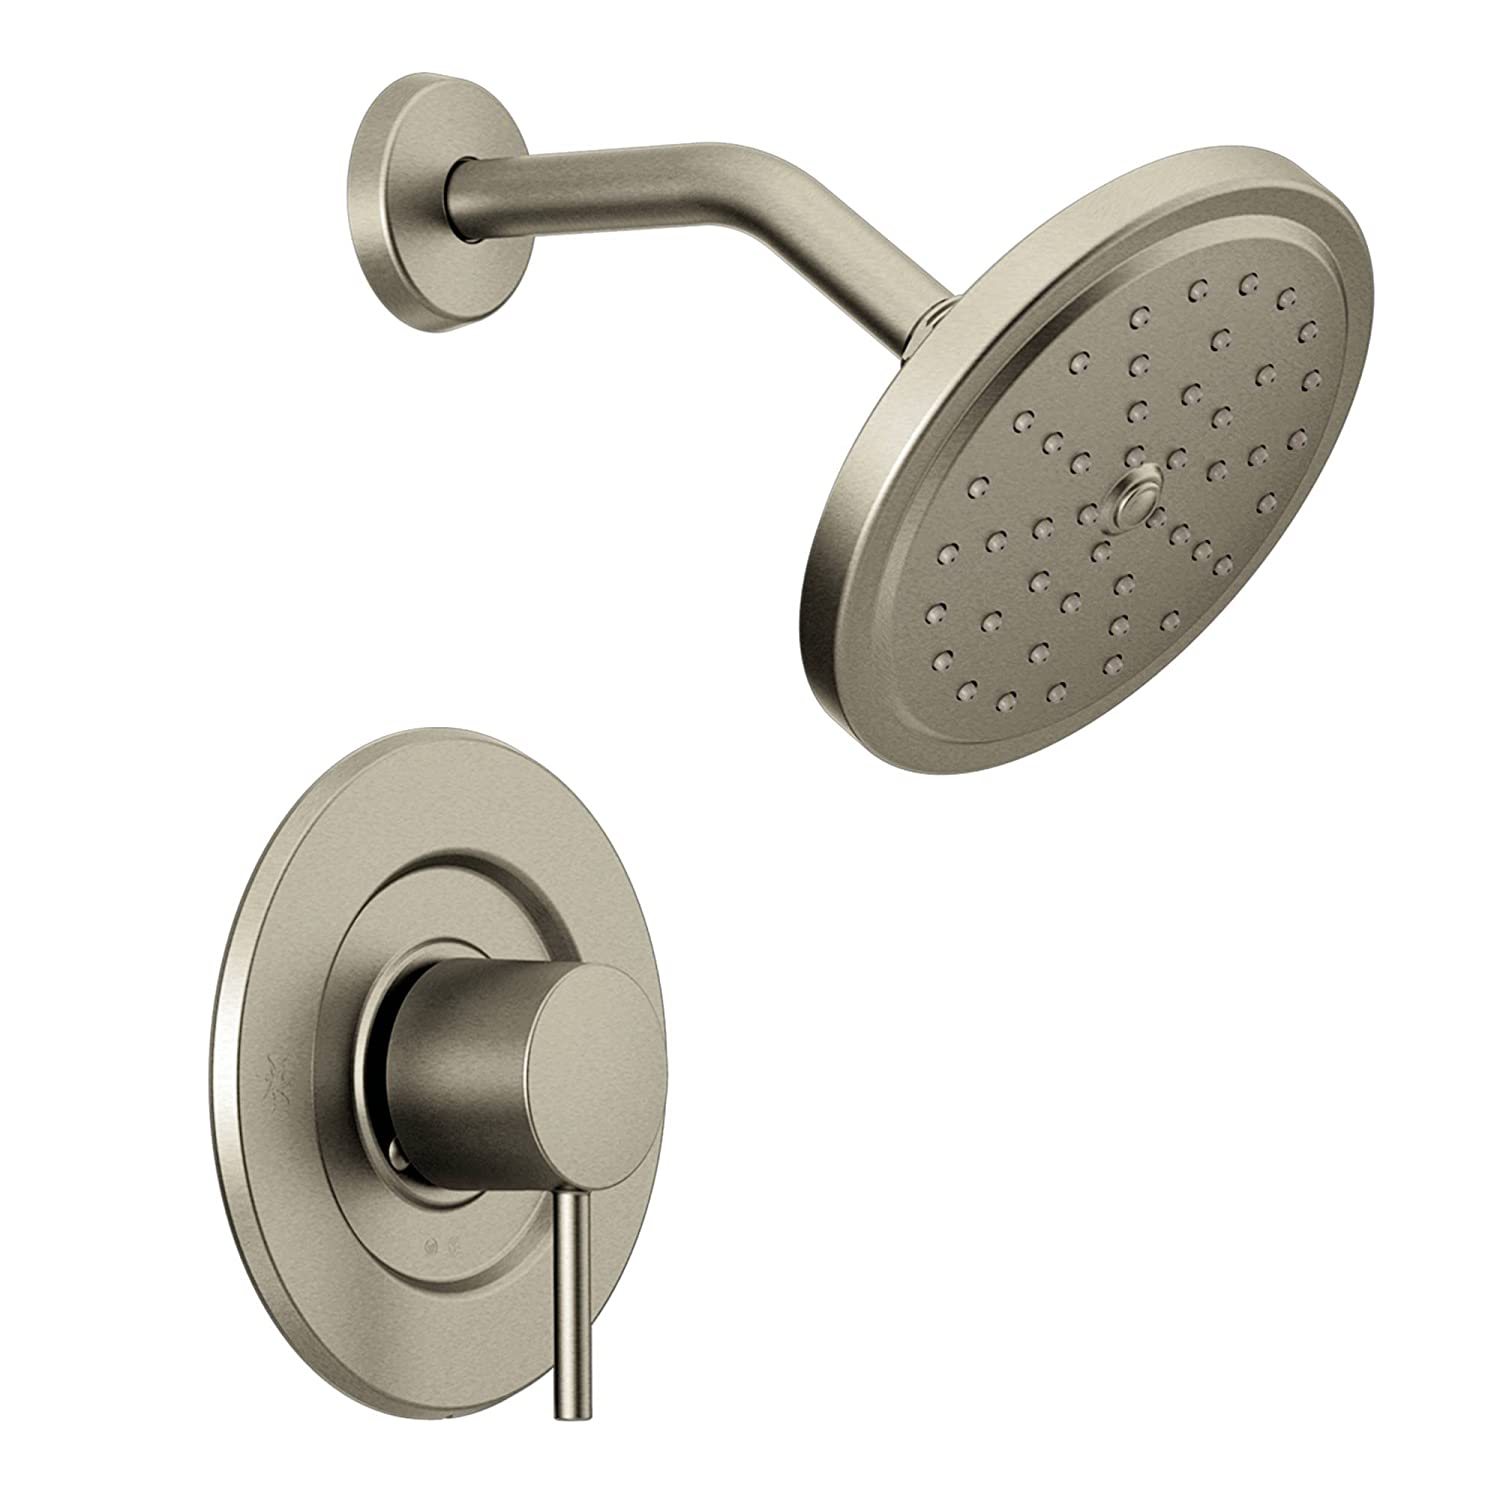 Moen T3292 Align Shower Only Body Set Without Moenu0027s Moentrol Shower Valve,  Chrome     Amazon.com